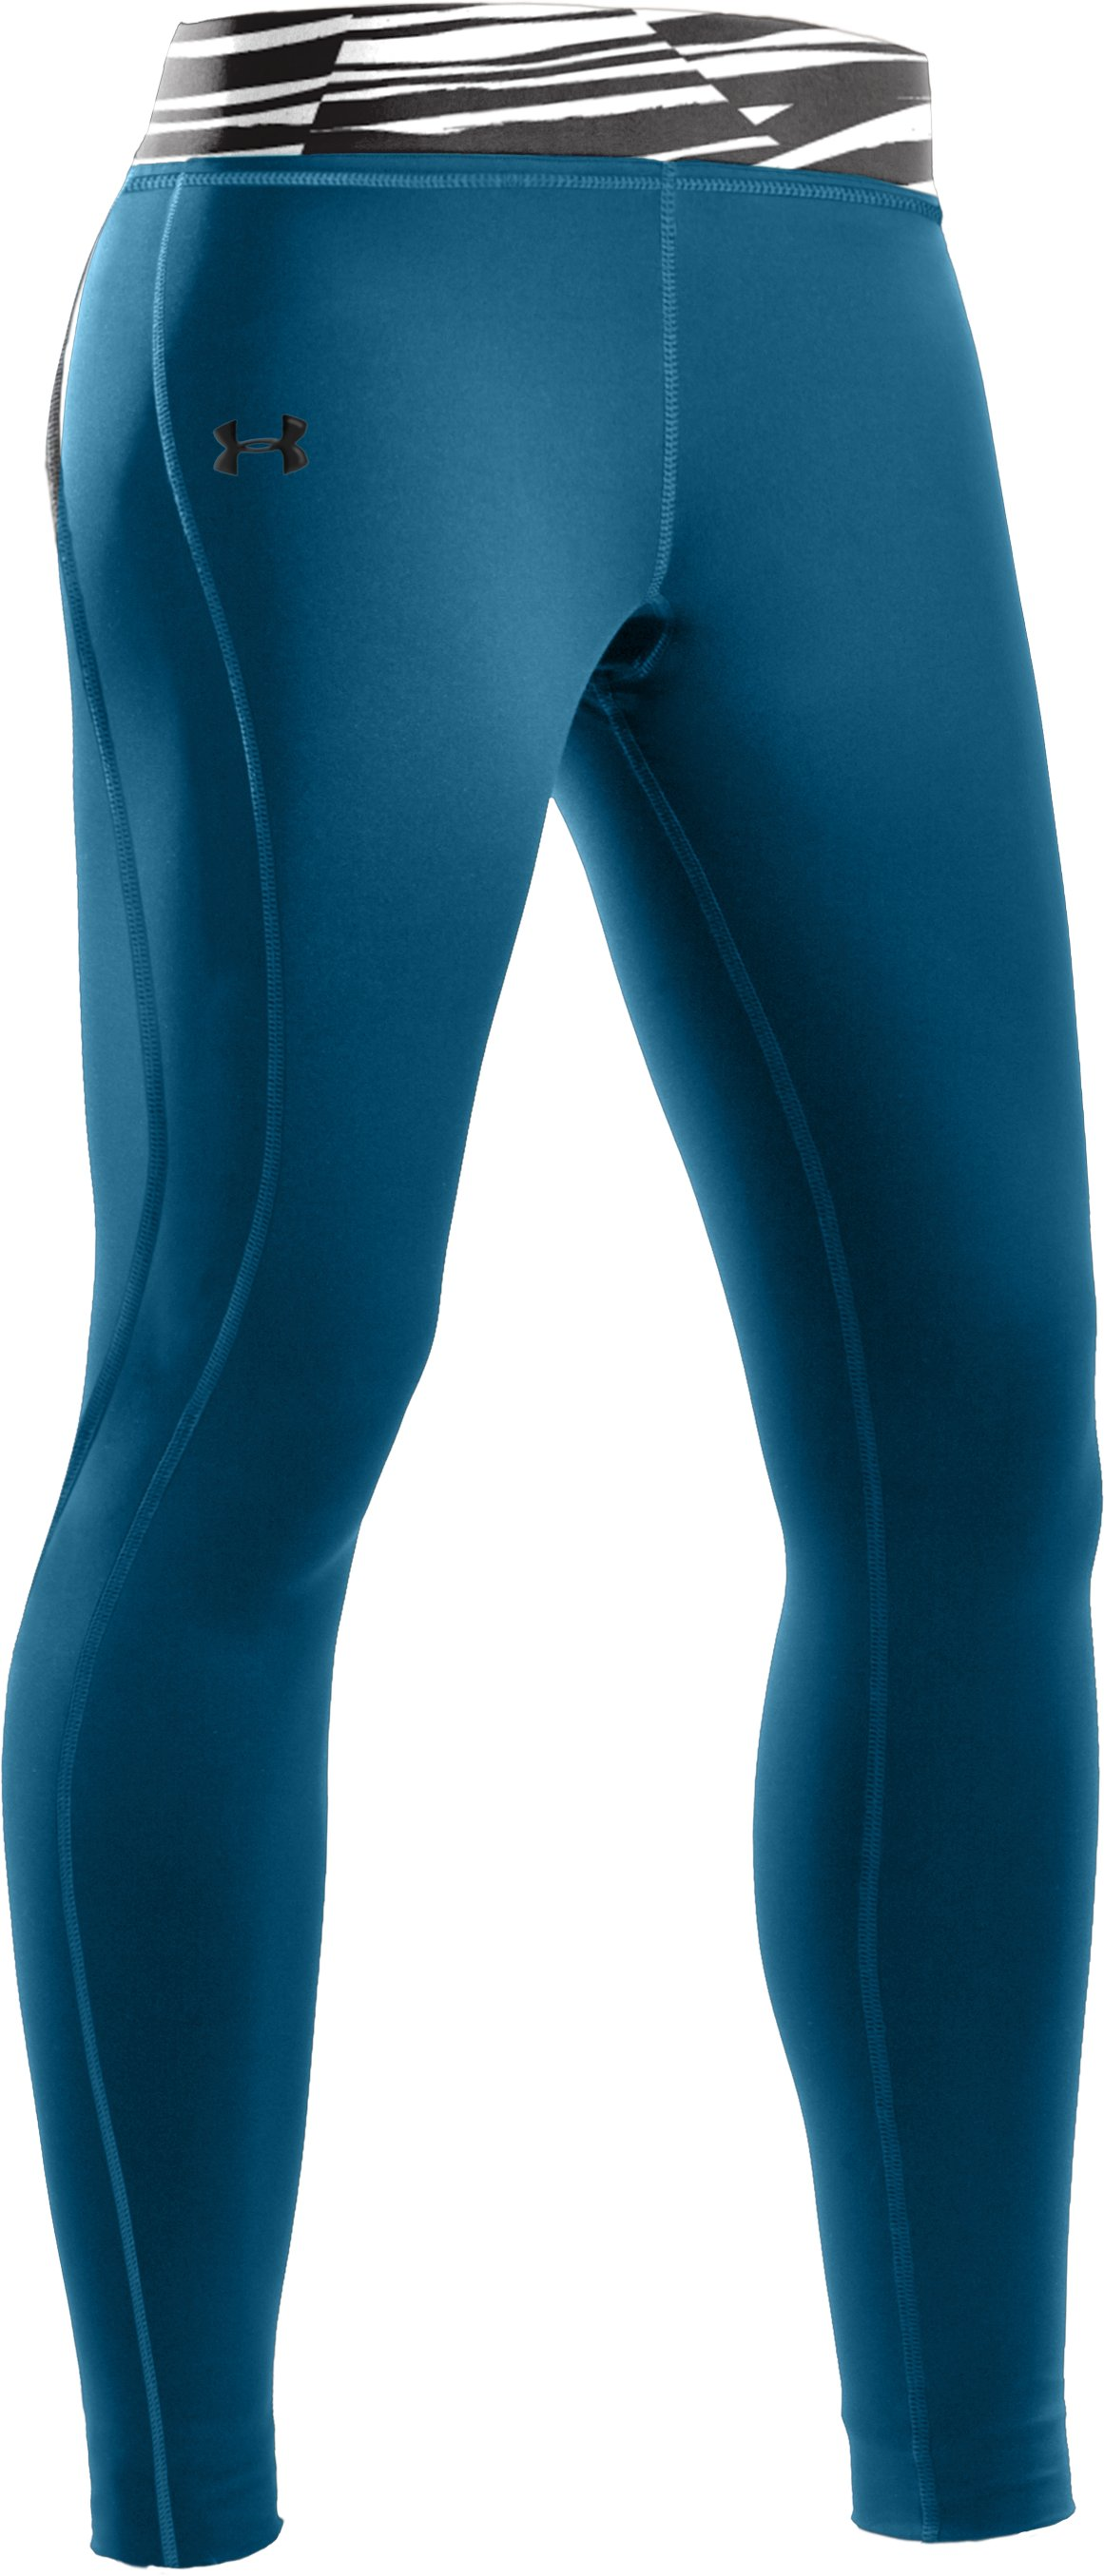 CG Fierce Tights, Immersion